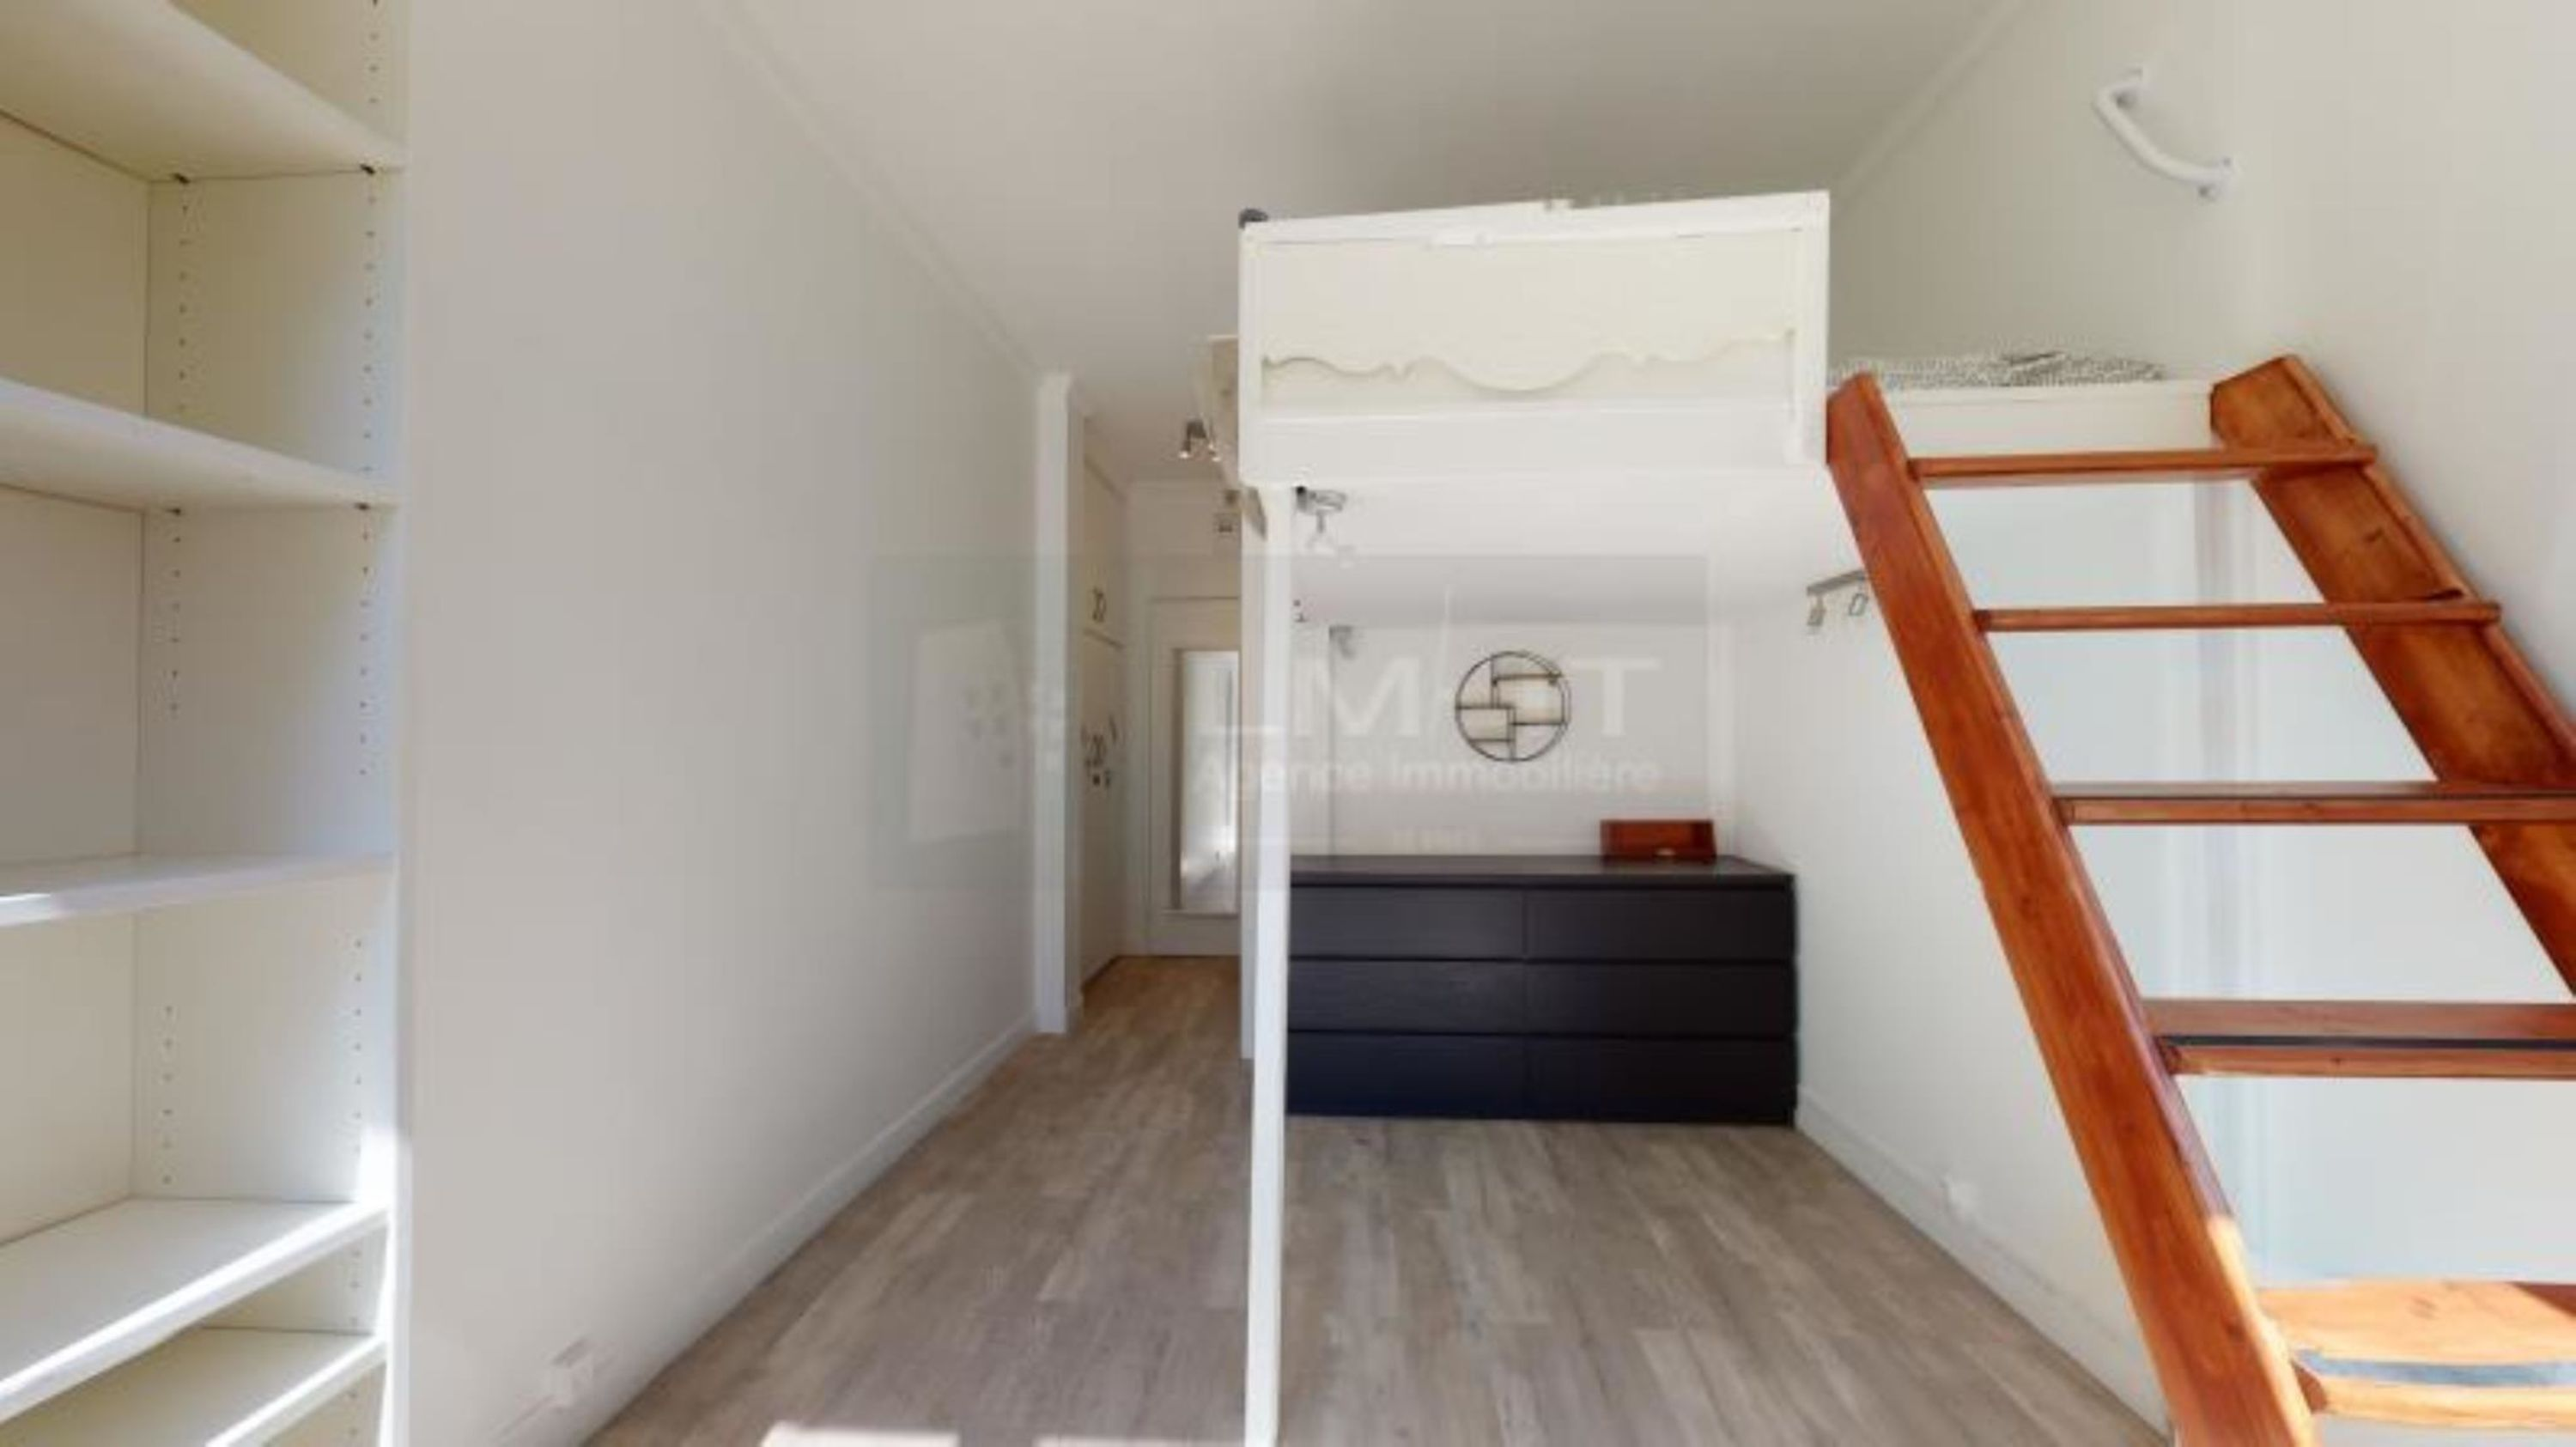 agence immobilière sevres 92 le chesnay 78 achat vente location appartement maison immobilier LMHT ANF KANZLUCB